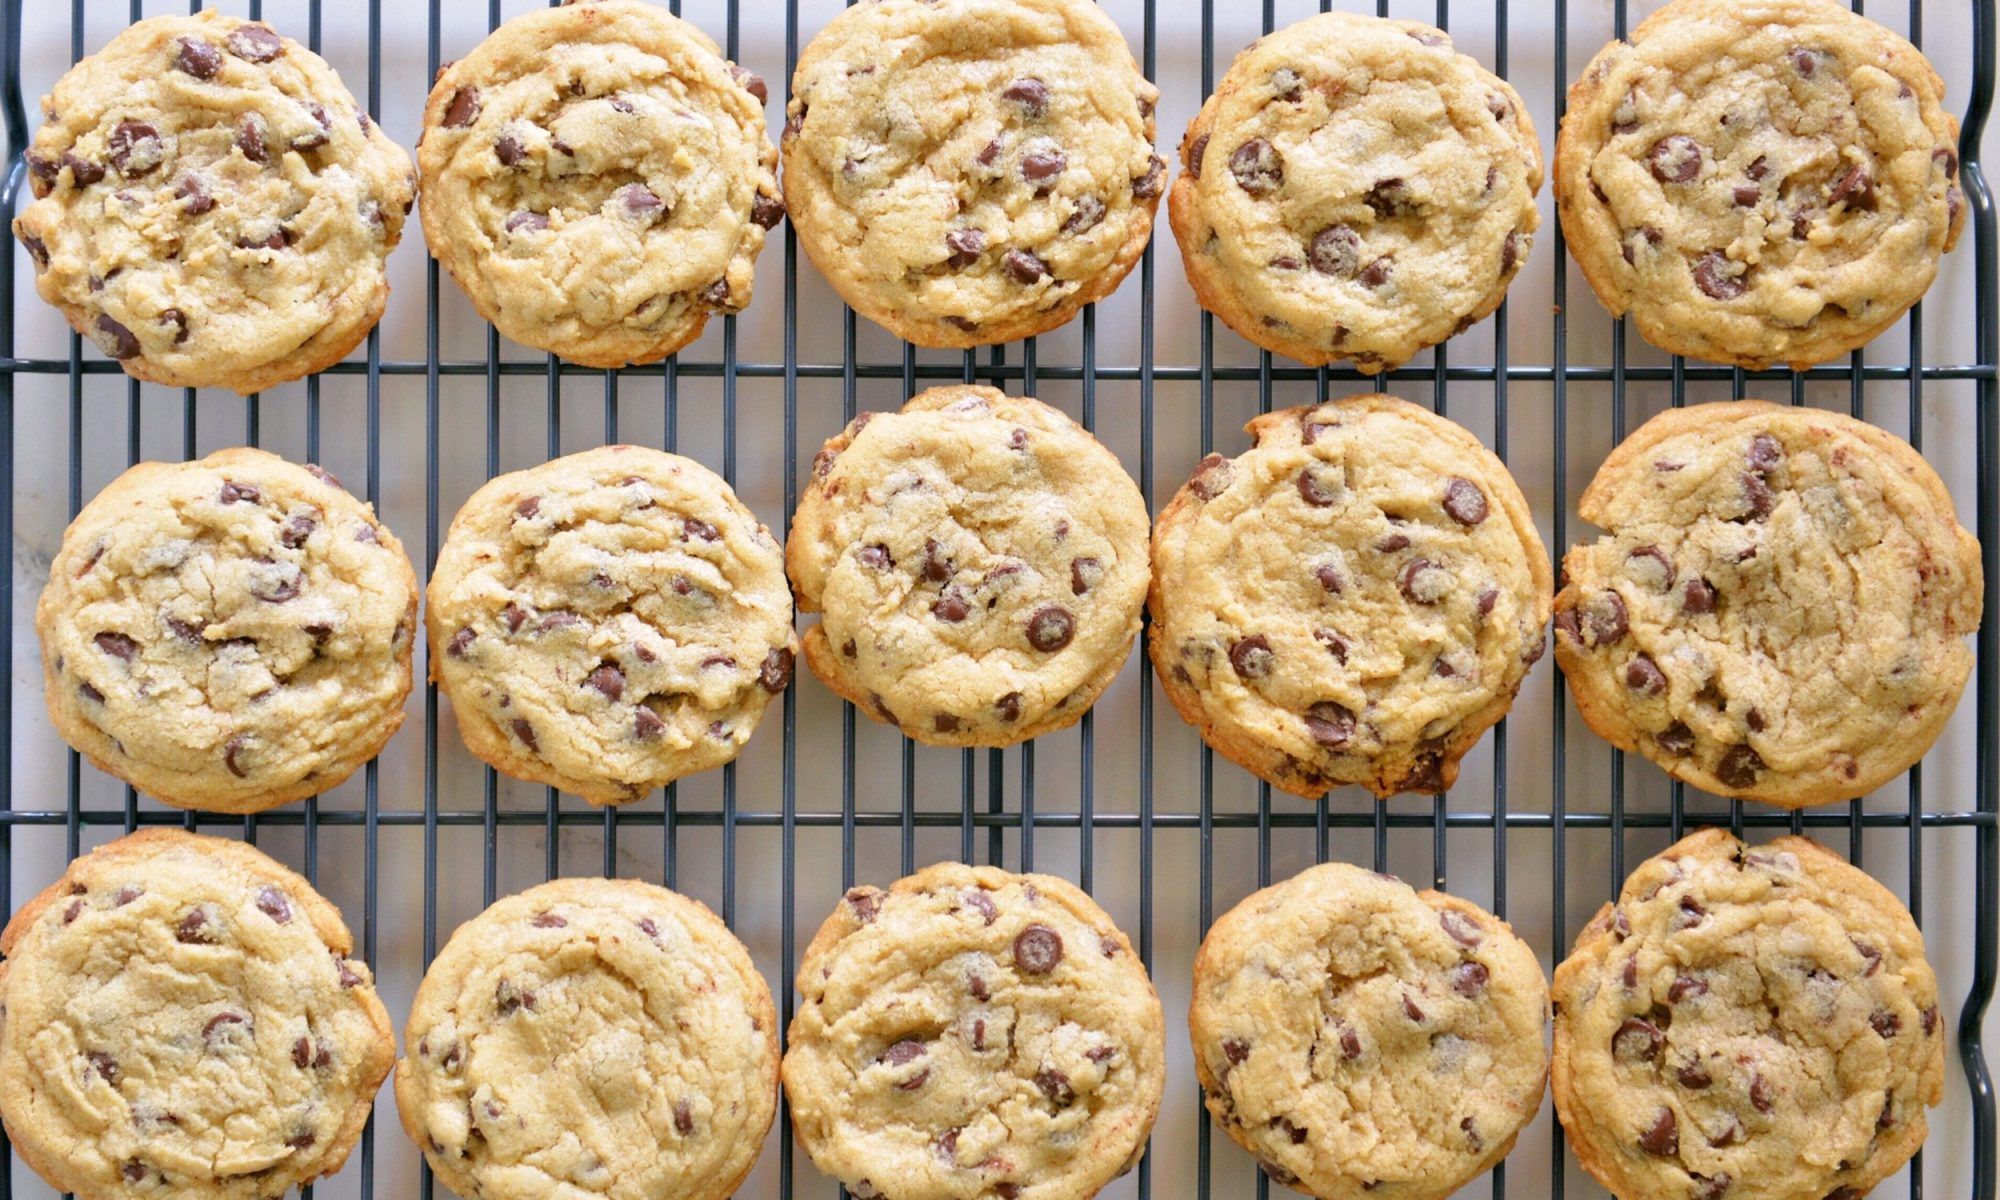 EC: New Jersey Is the Last State That Won't Let You Sell Home-Baked Goods